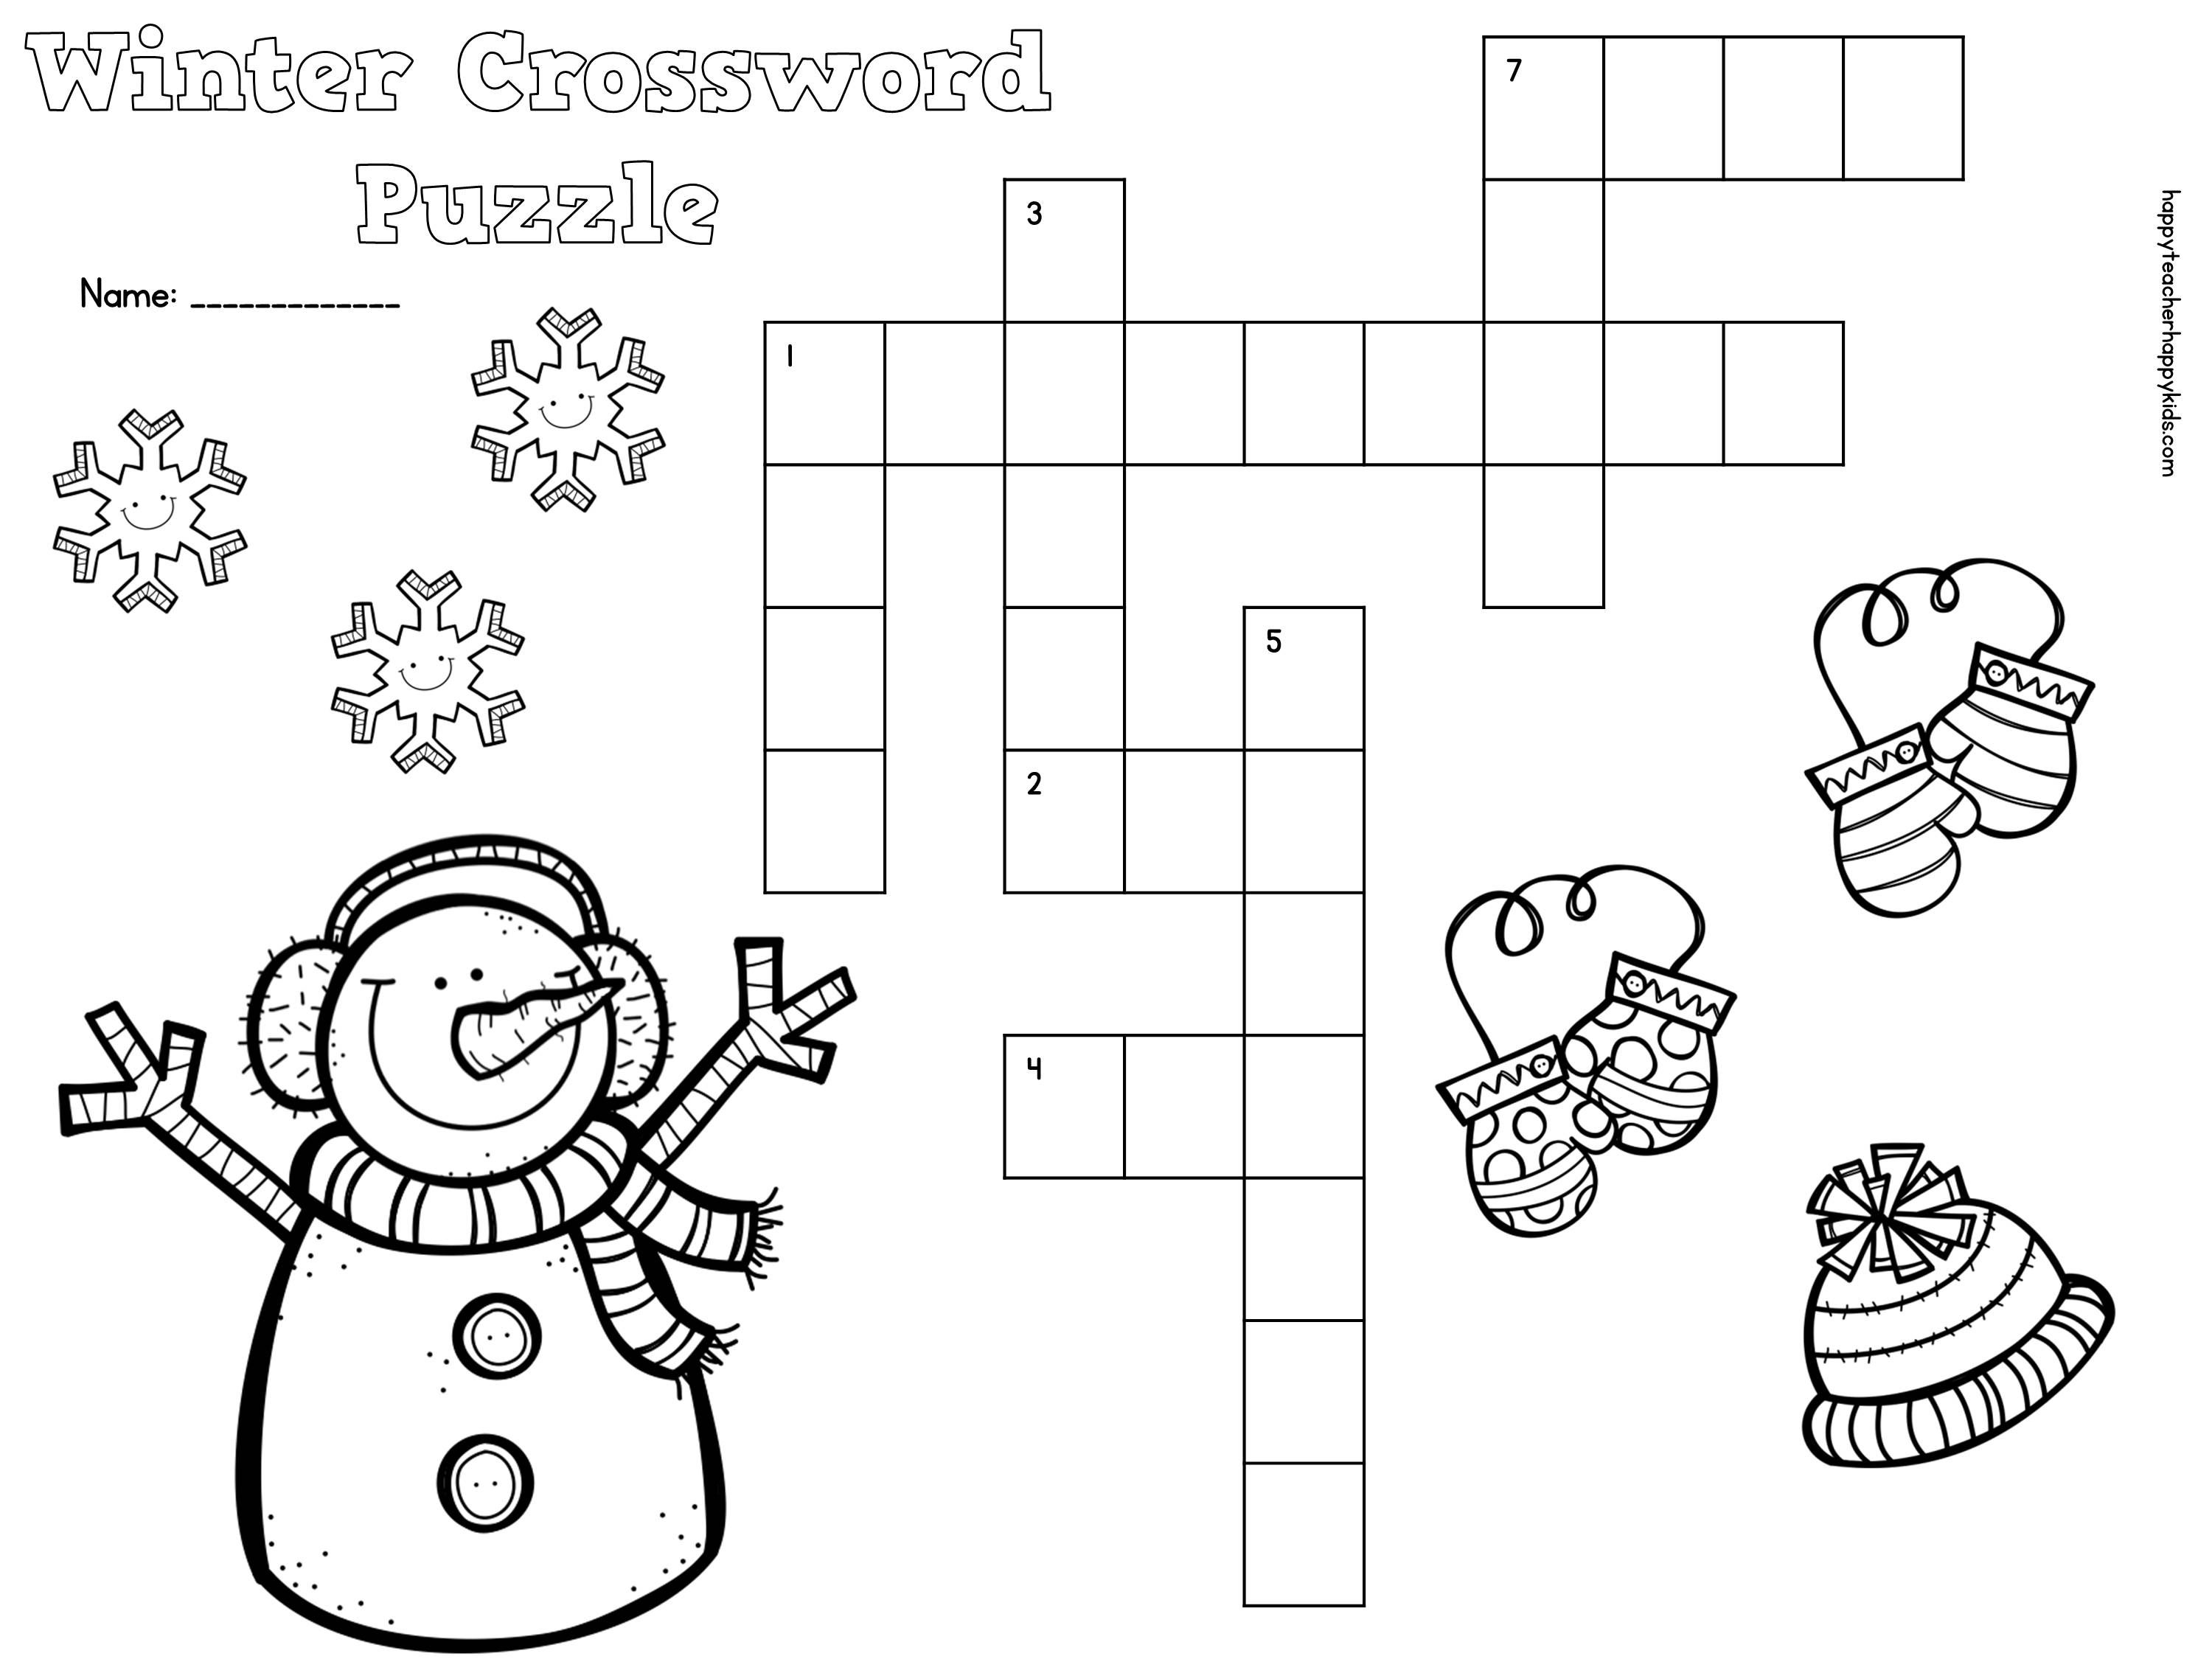 Free Winter Crossword Puzzle For Primary Students | Snow, Penguins - Printable Crossword Puzzles Winter